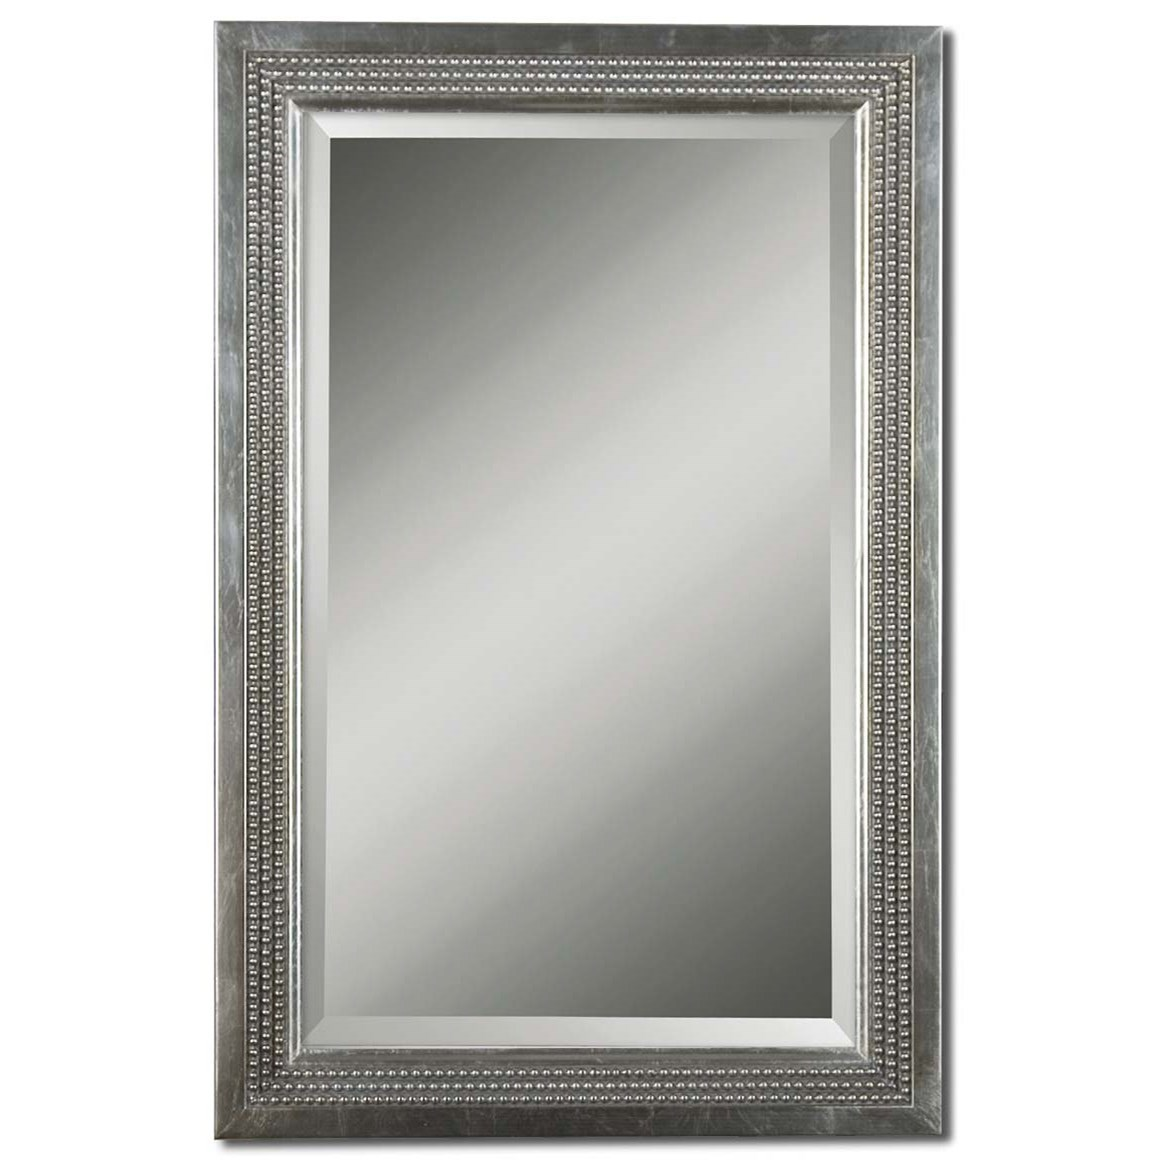 Uttermost Mirrors Triple Beaded, Vanity Mirror - Item Number: 14411 B